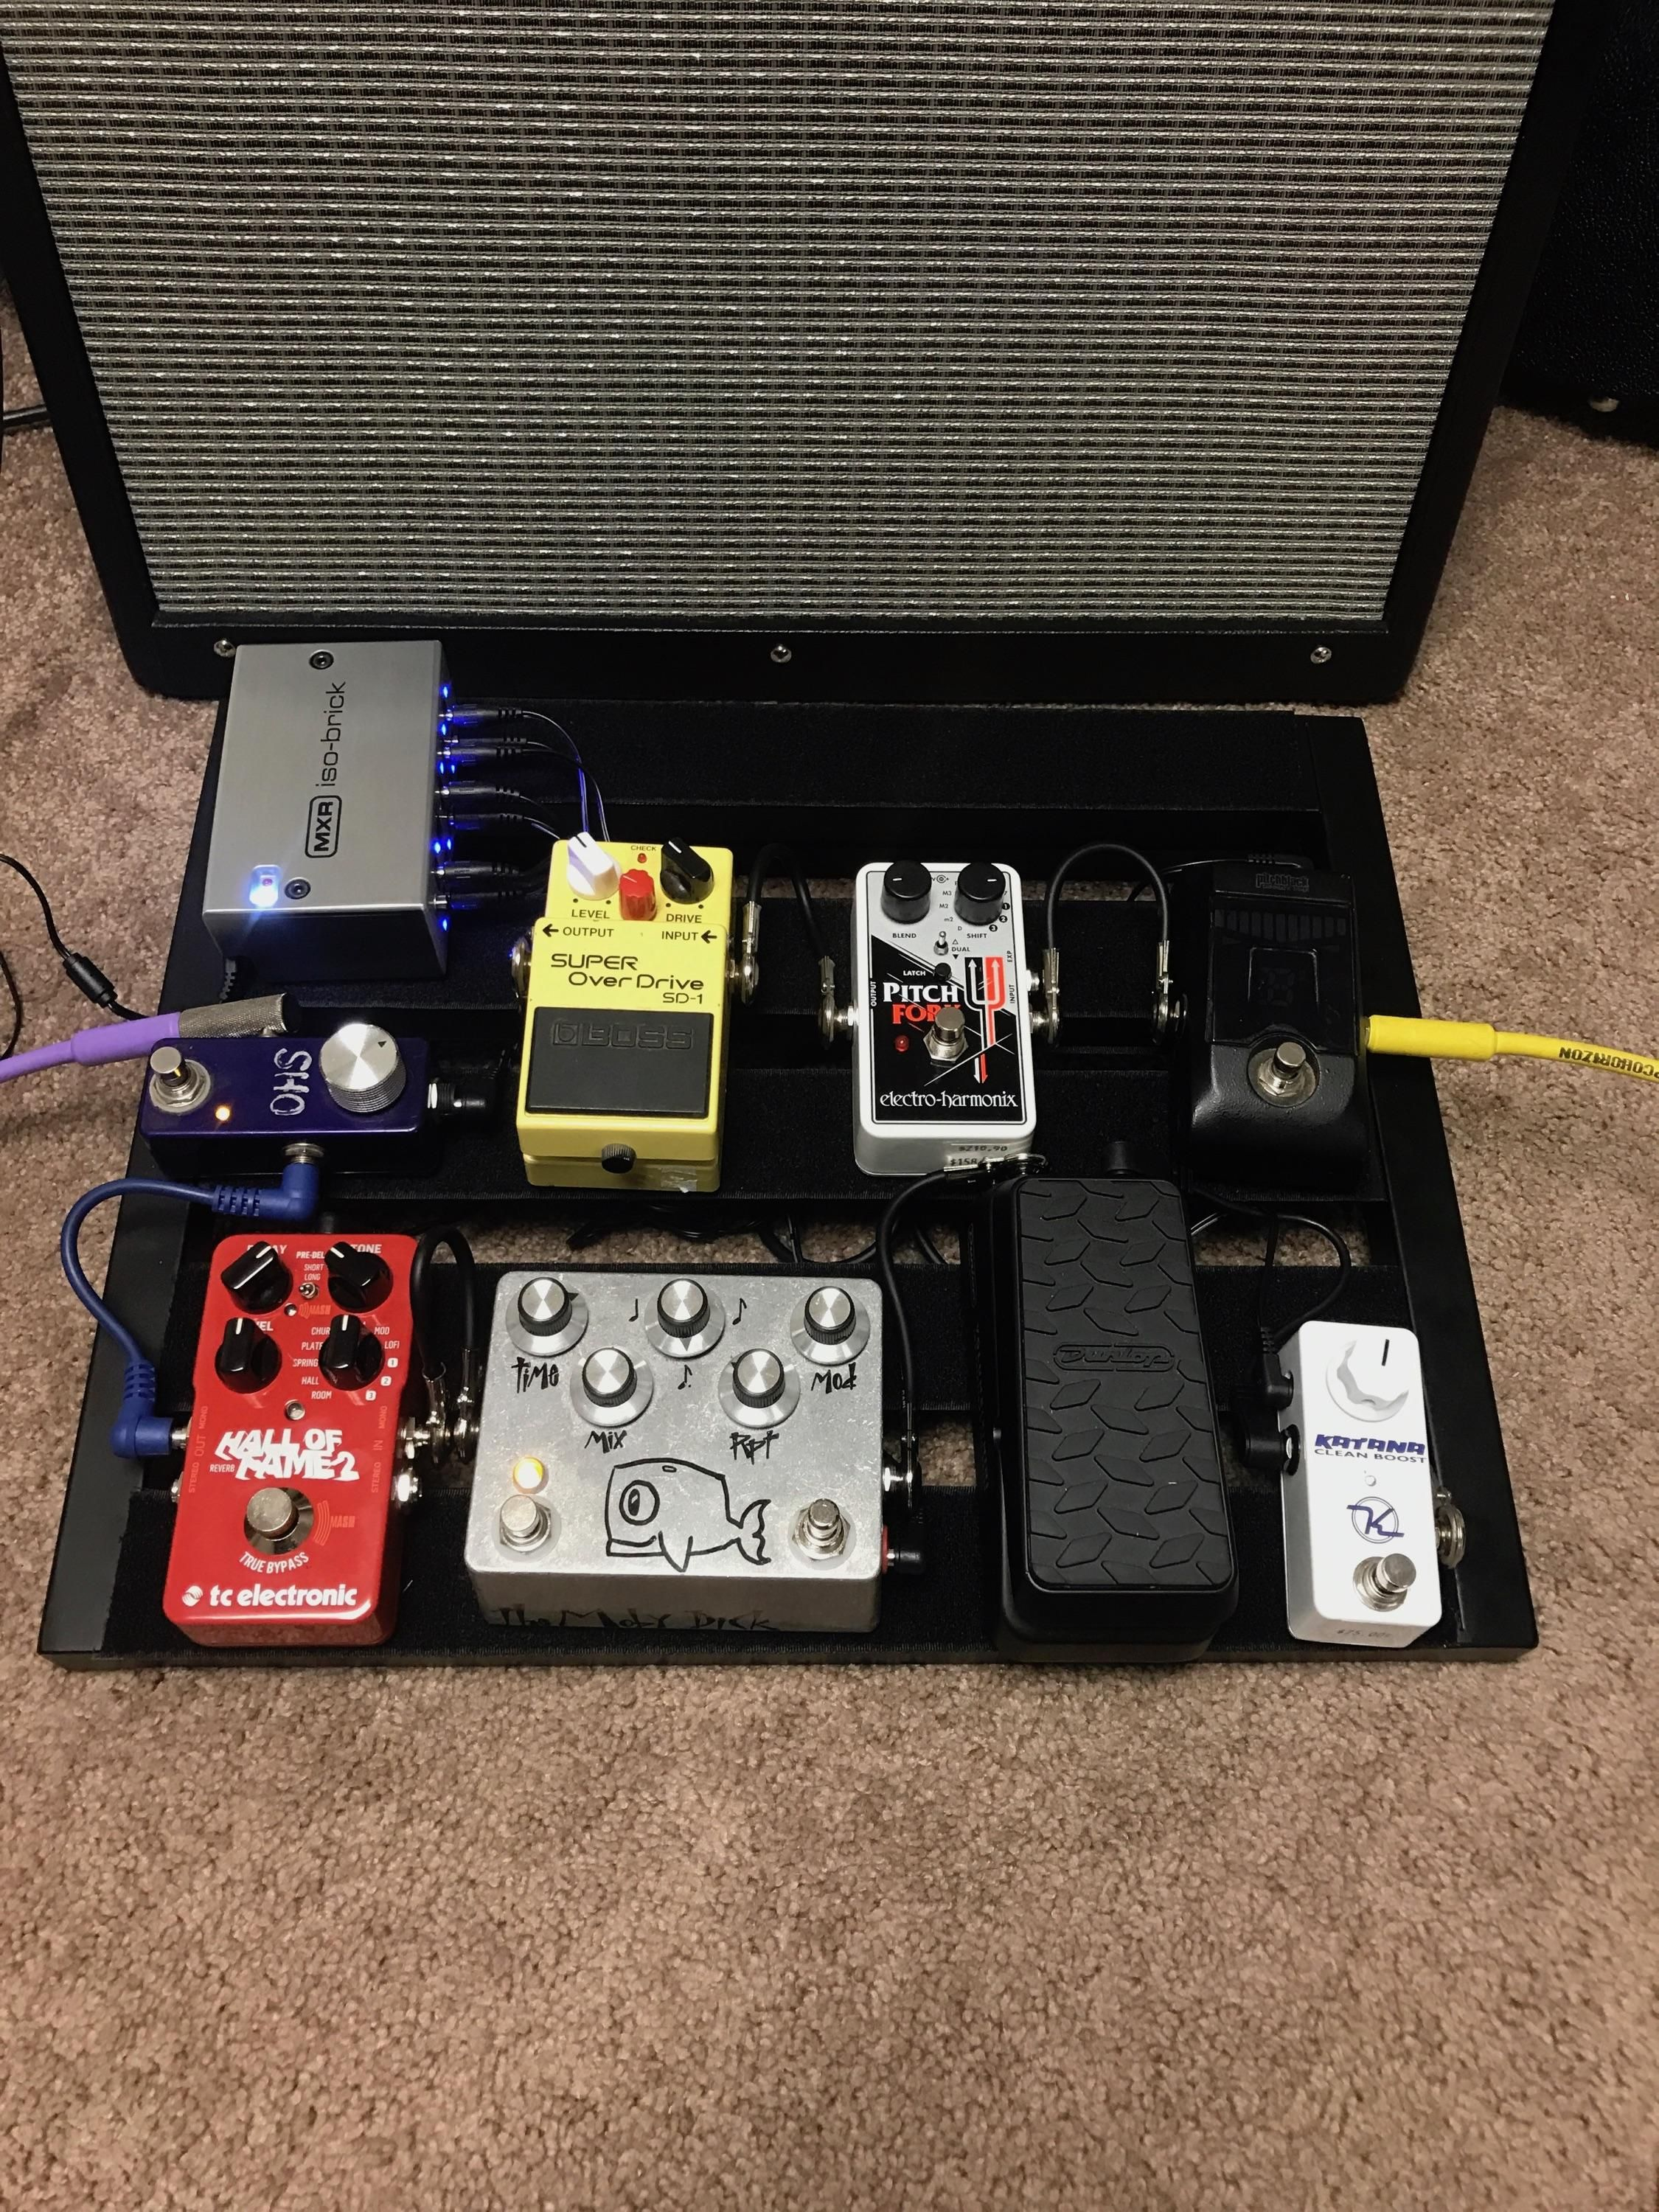 NPD: EHX Pitchfork Keeley mini katana and MXR ISO brick